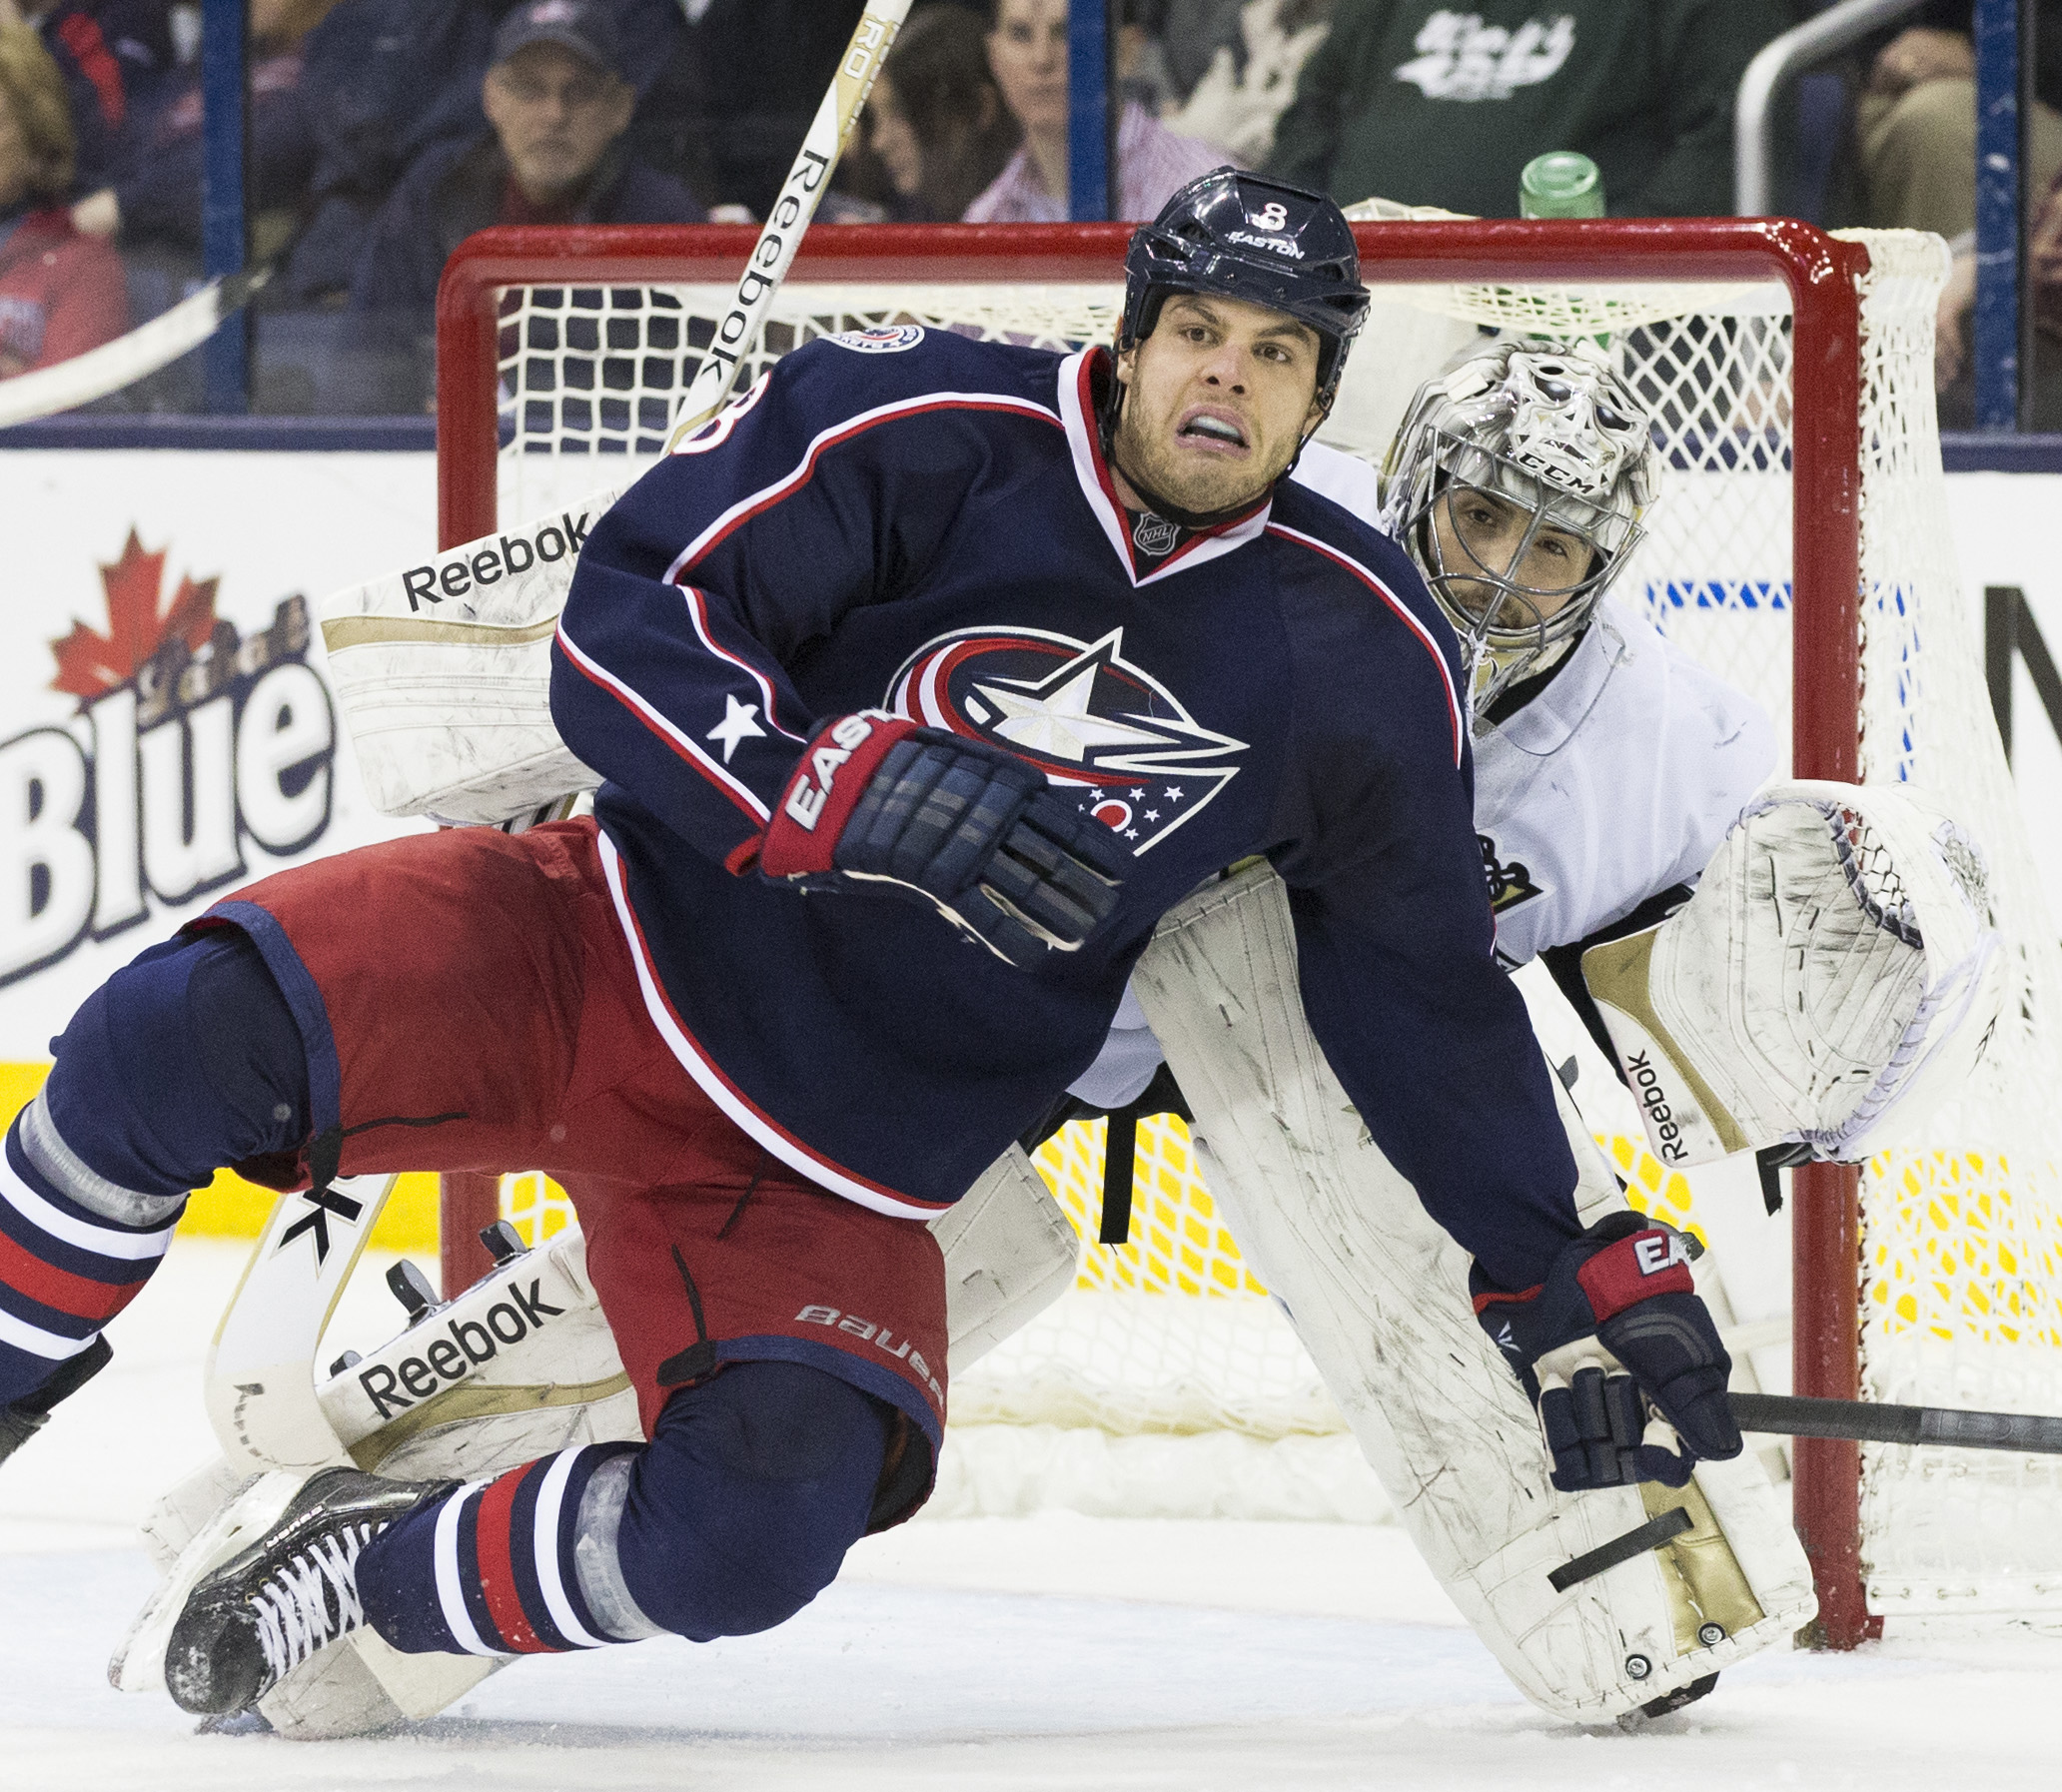 Mar 28, 2014; Columbus, OH, USA; Columbus Blue Jackets right wing Nathan Horton (8) falls on the ice in front of Pittsburgh Penguins goalie Marc-Andre Fleury (29) at Nationwide Arena. The Penguins won 2-1. (Greg Bartram-USA TODAY Sports)